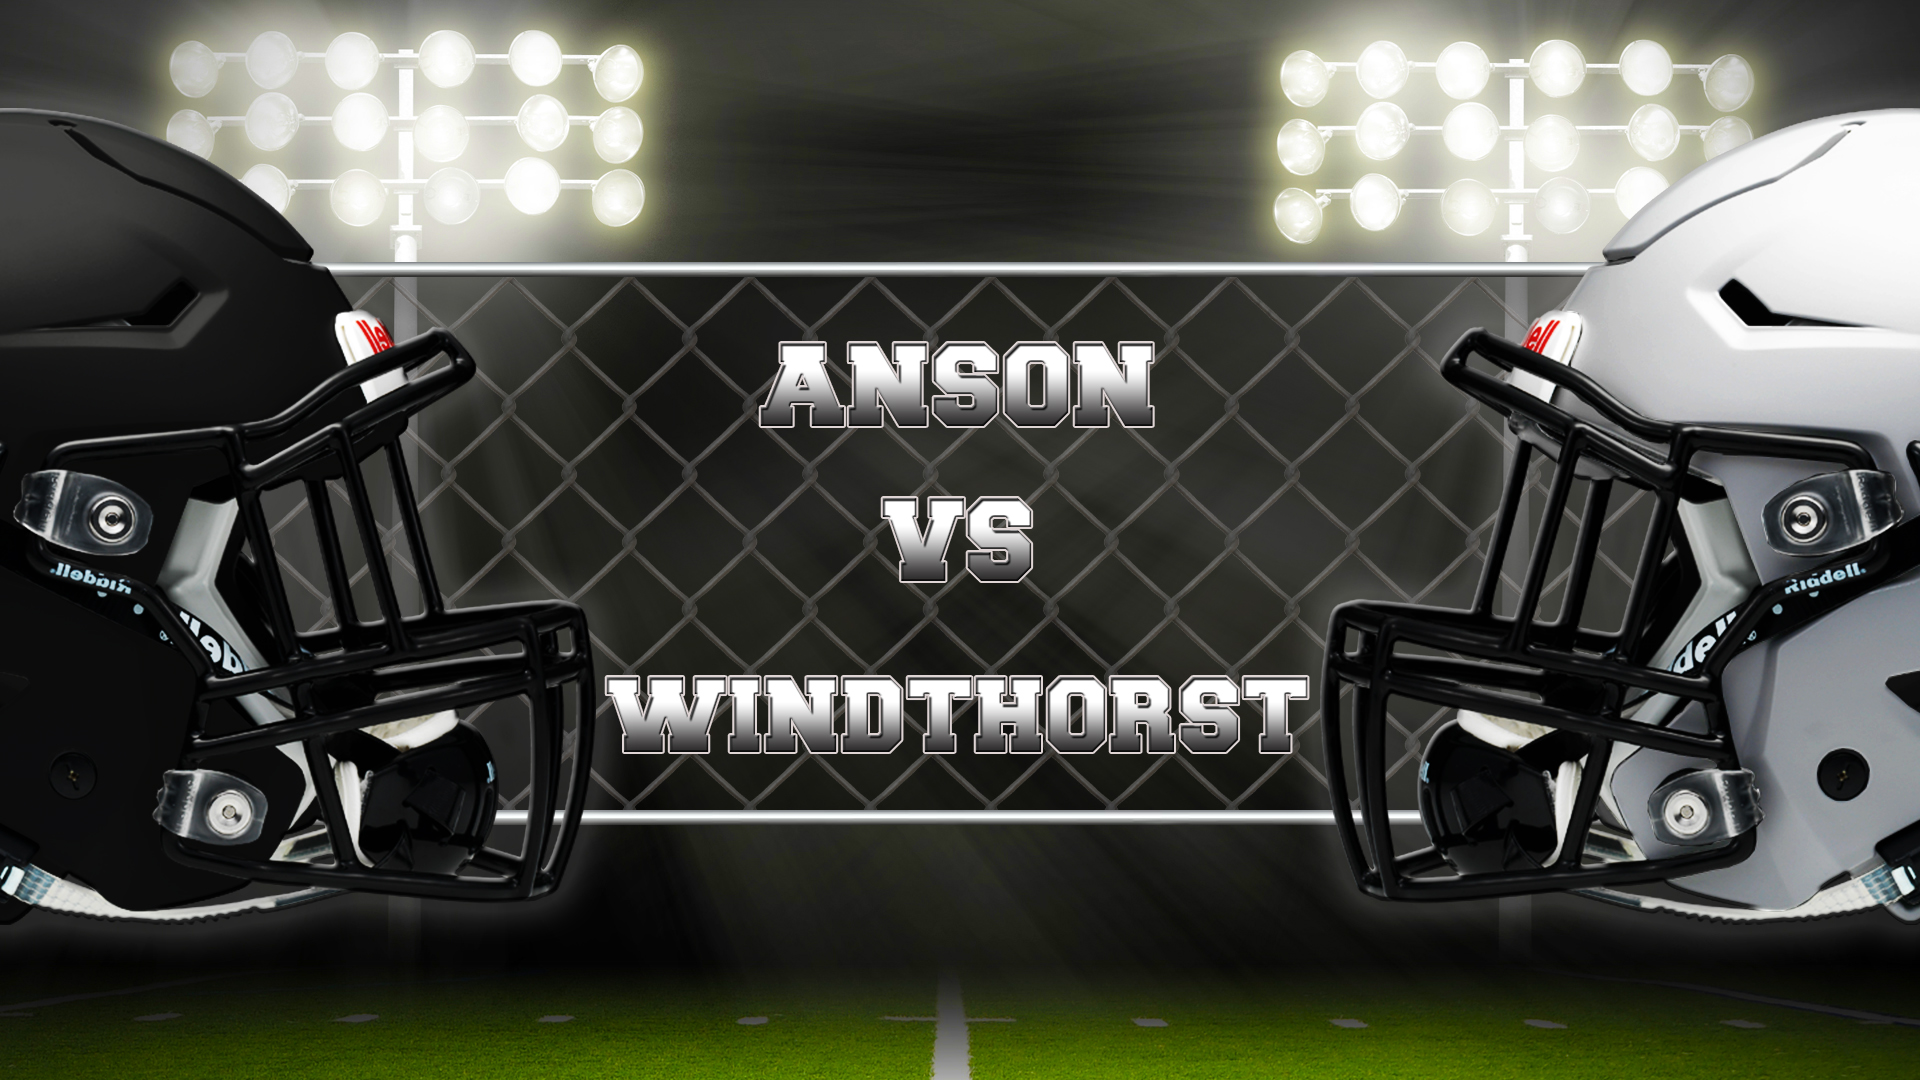 Anson vs Windthorst_1475157470018.jpg